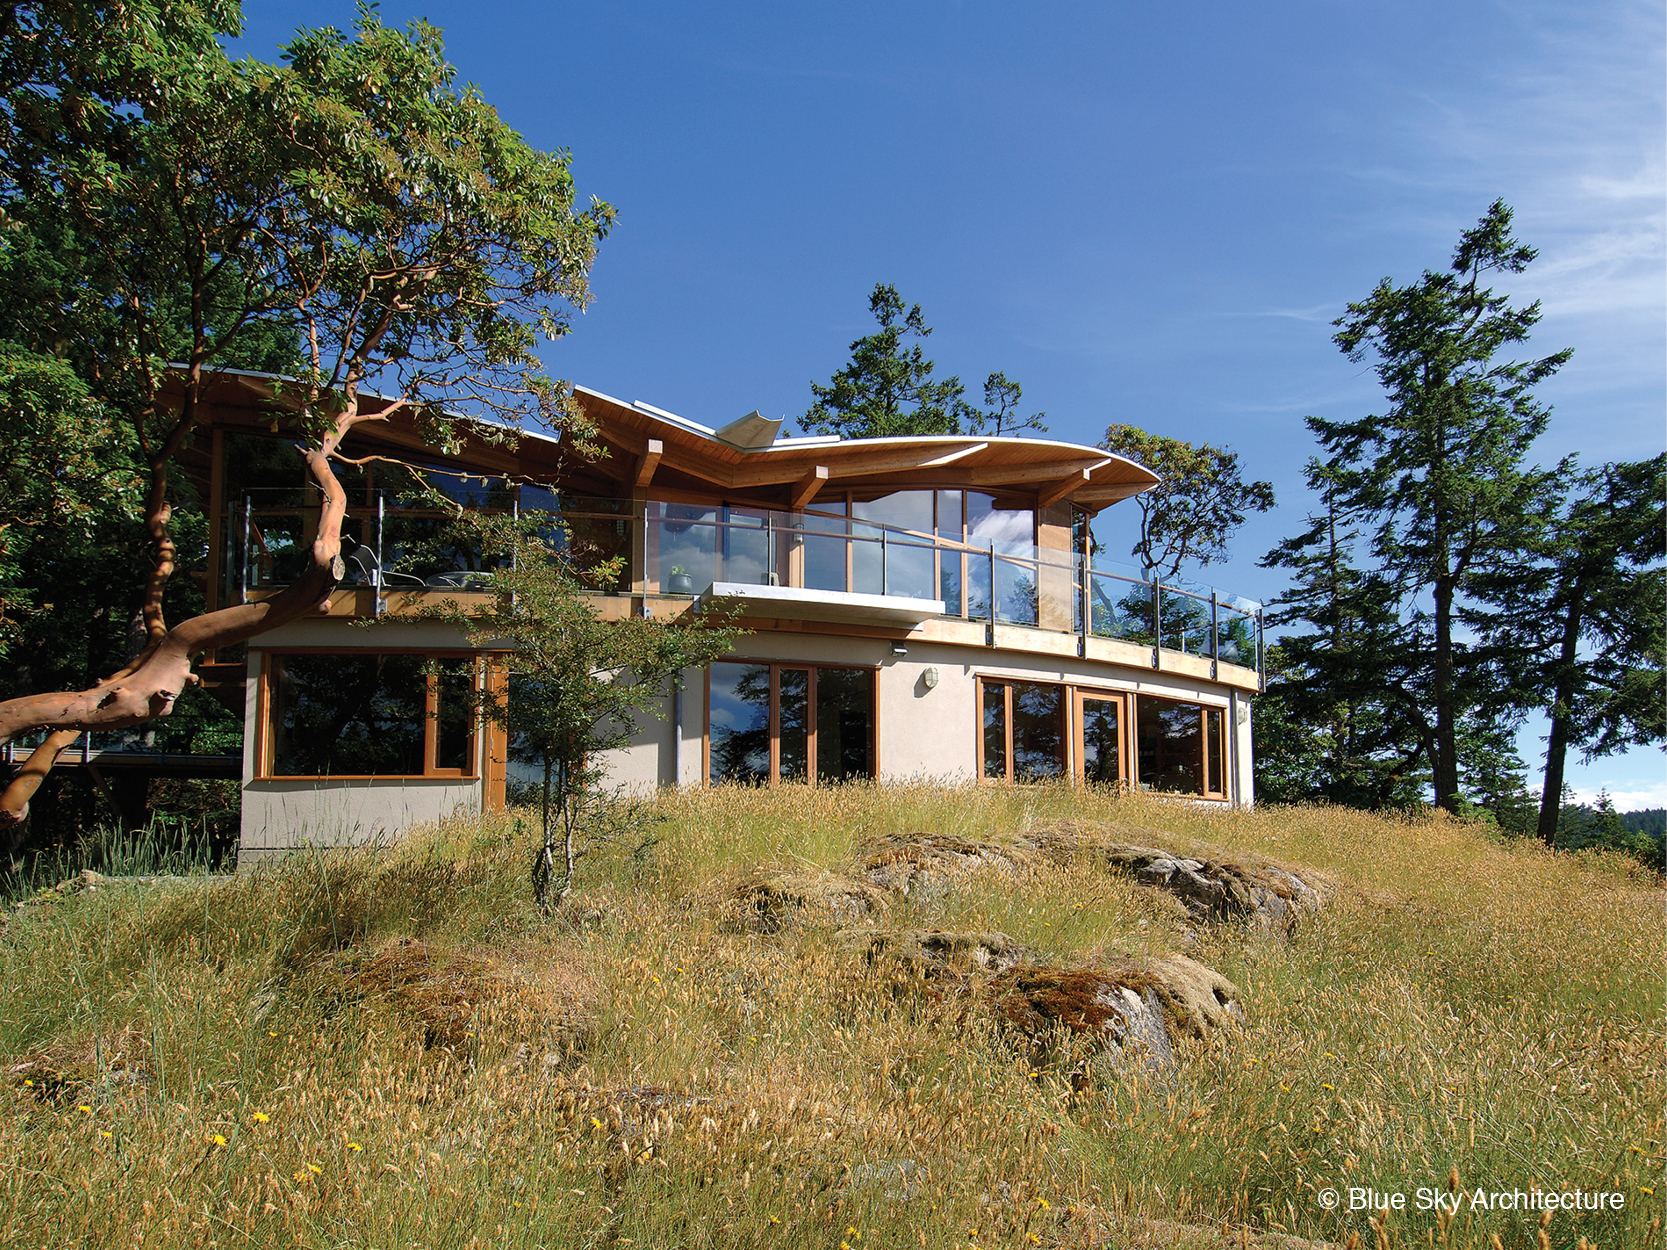 Island residential architecture